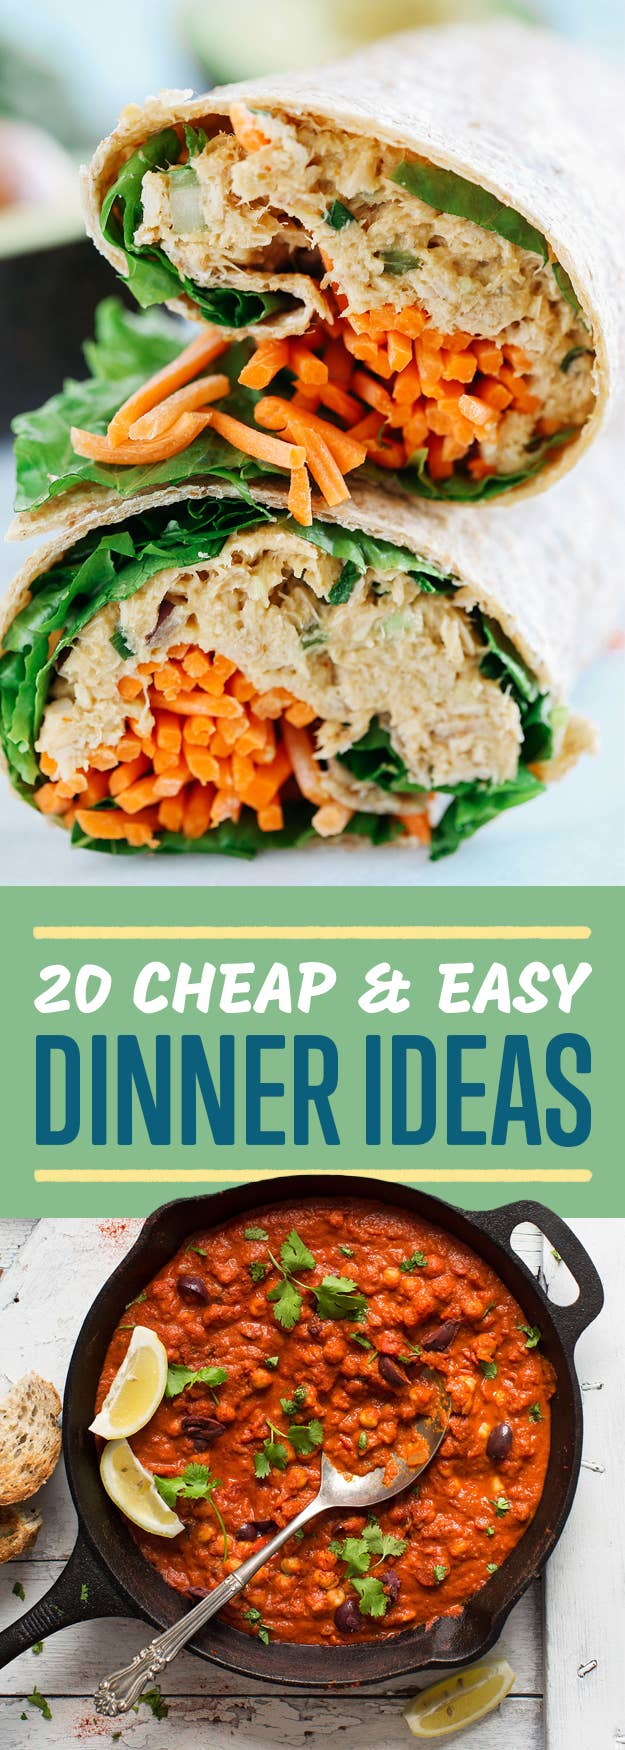 20 cheap meals that wont break the bank we recently asked the buzzfeed community to share their top budget friendly dinner ideas forumfinder Image collections